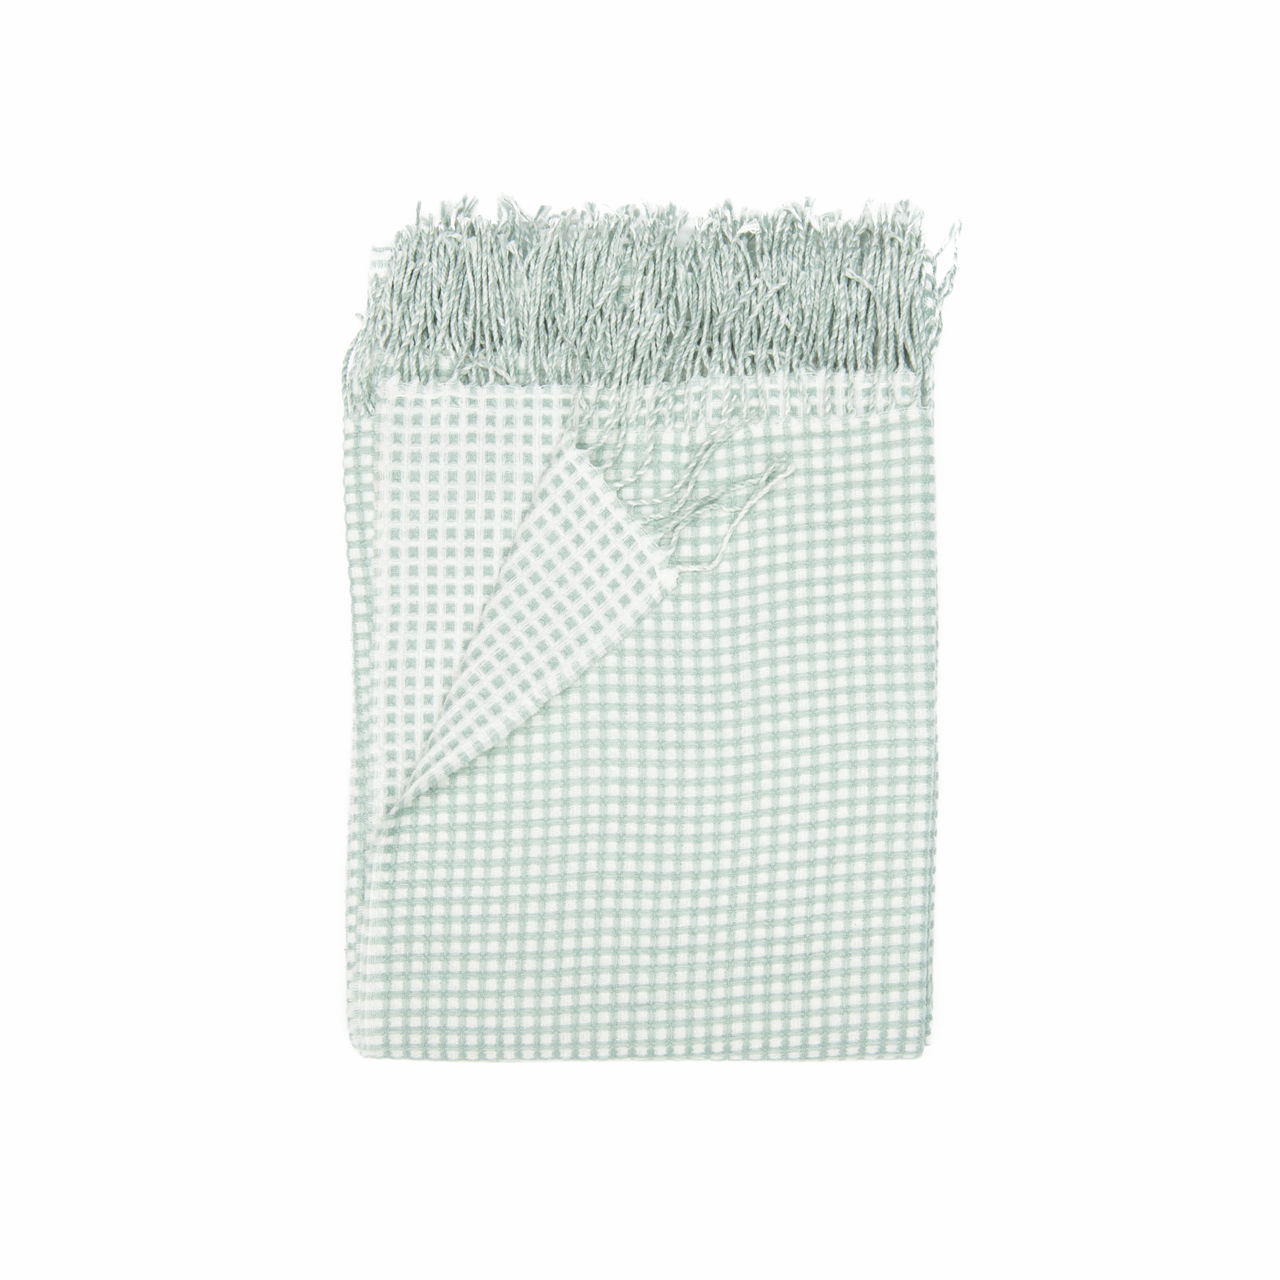 In 2 Linen Waffle Knitted Throw Rug   Natural & Mint